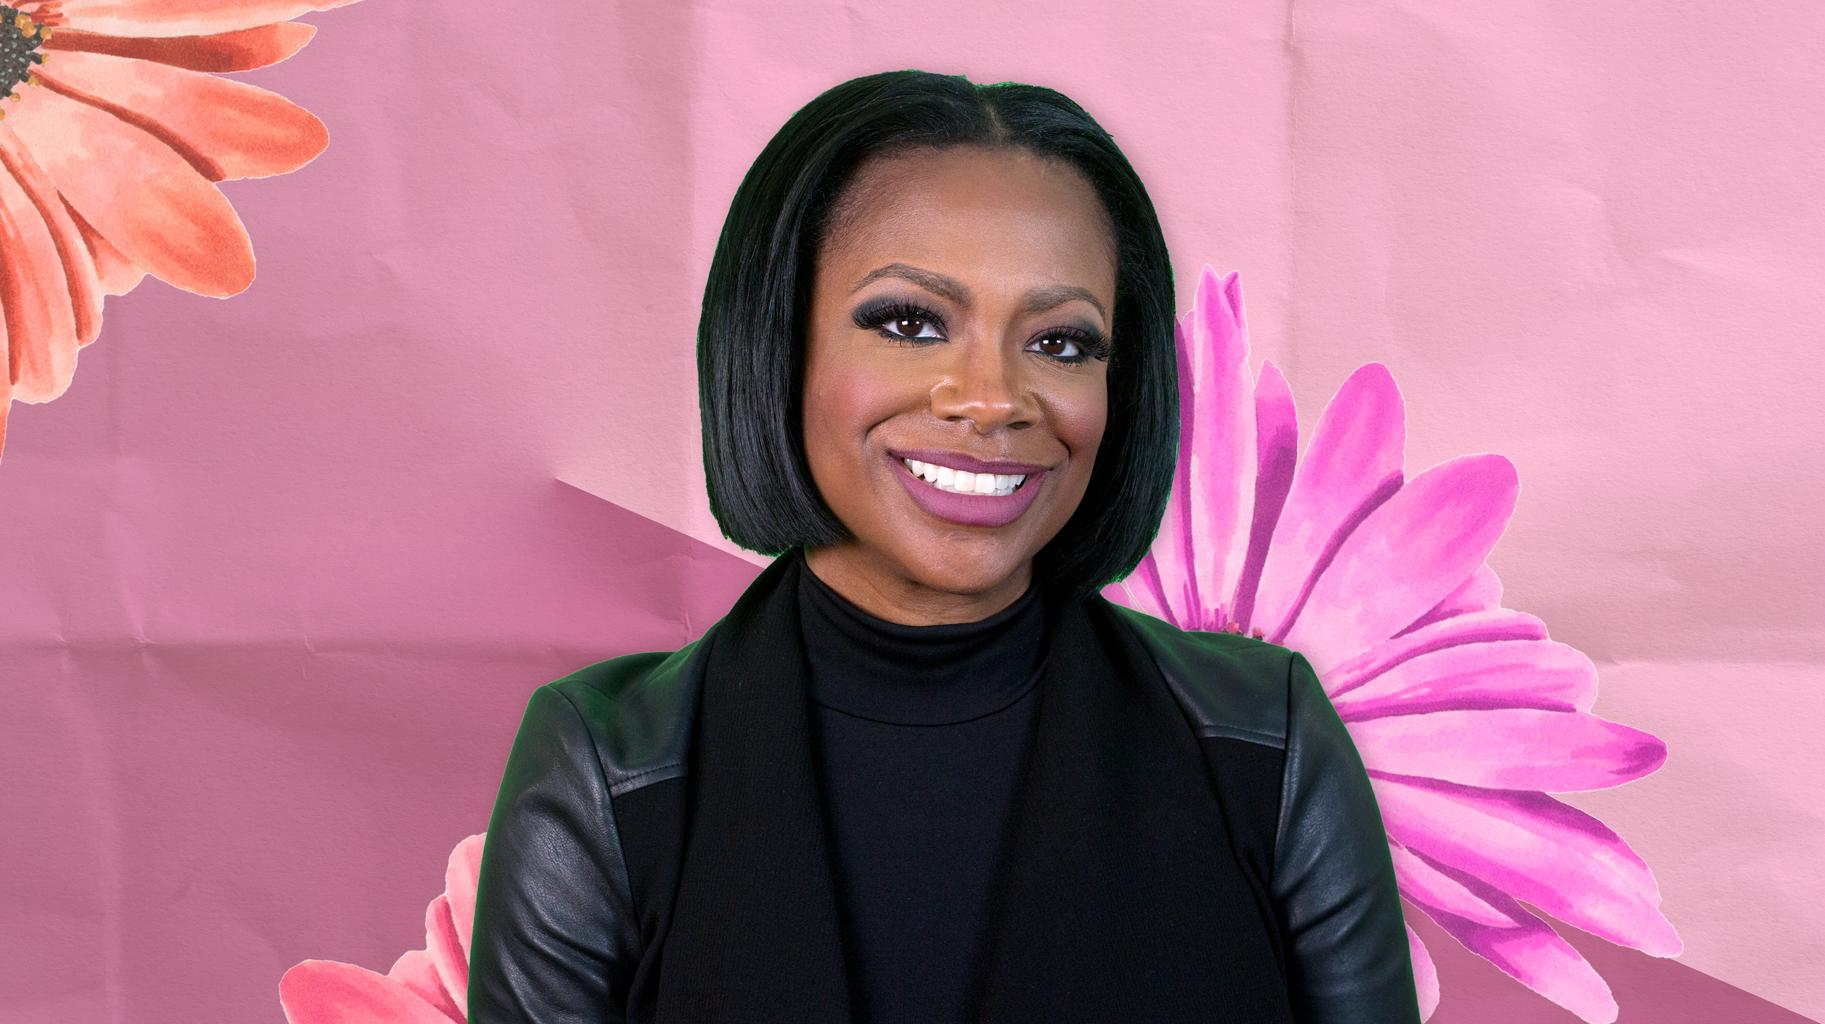 Kandi Burruss Shows Off Her Relax And Chill Mode Outfit - See It Here